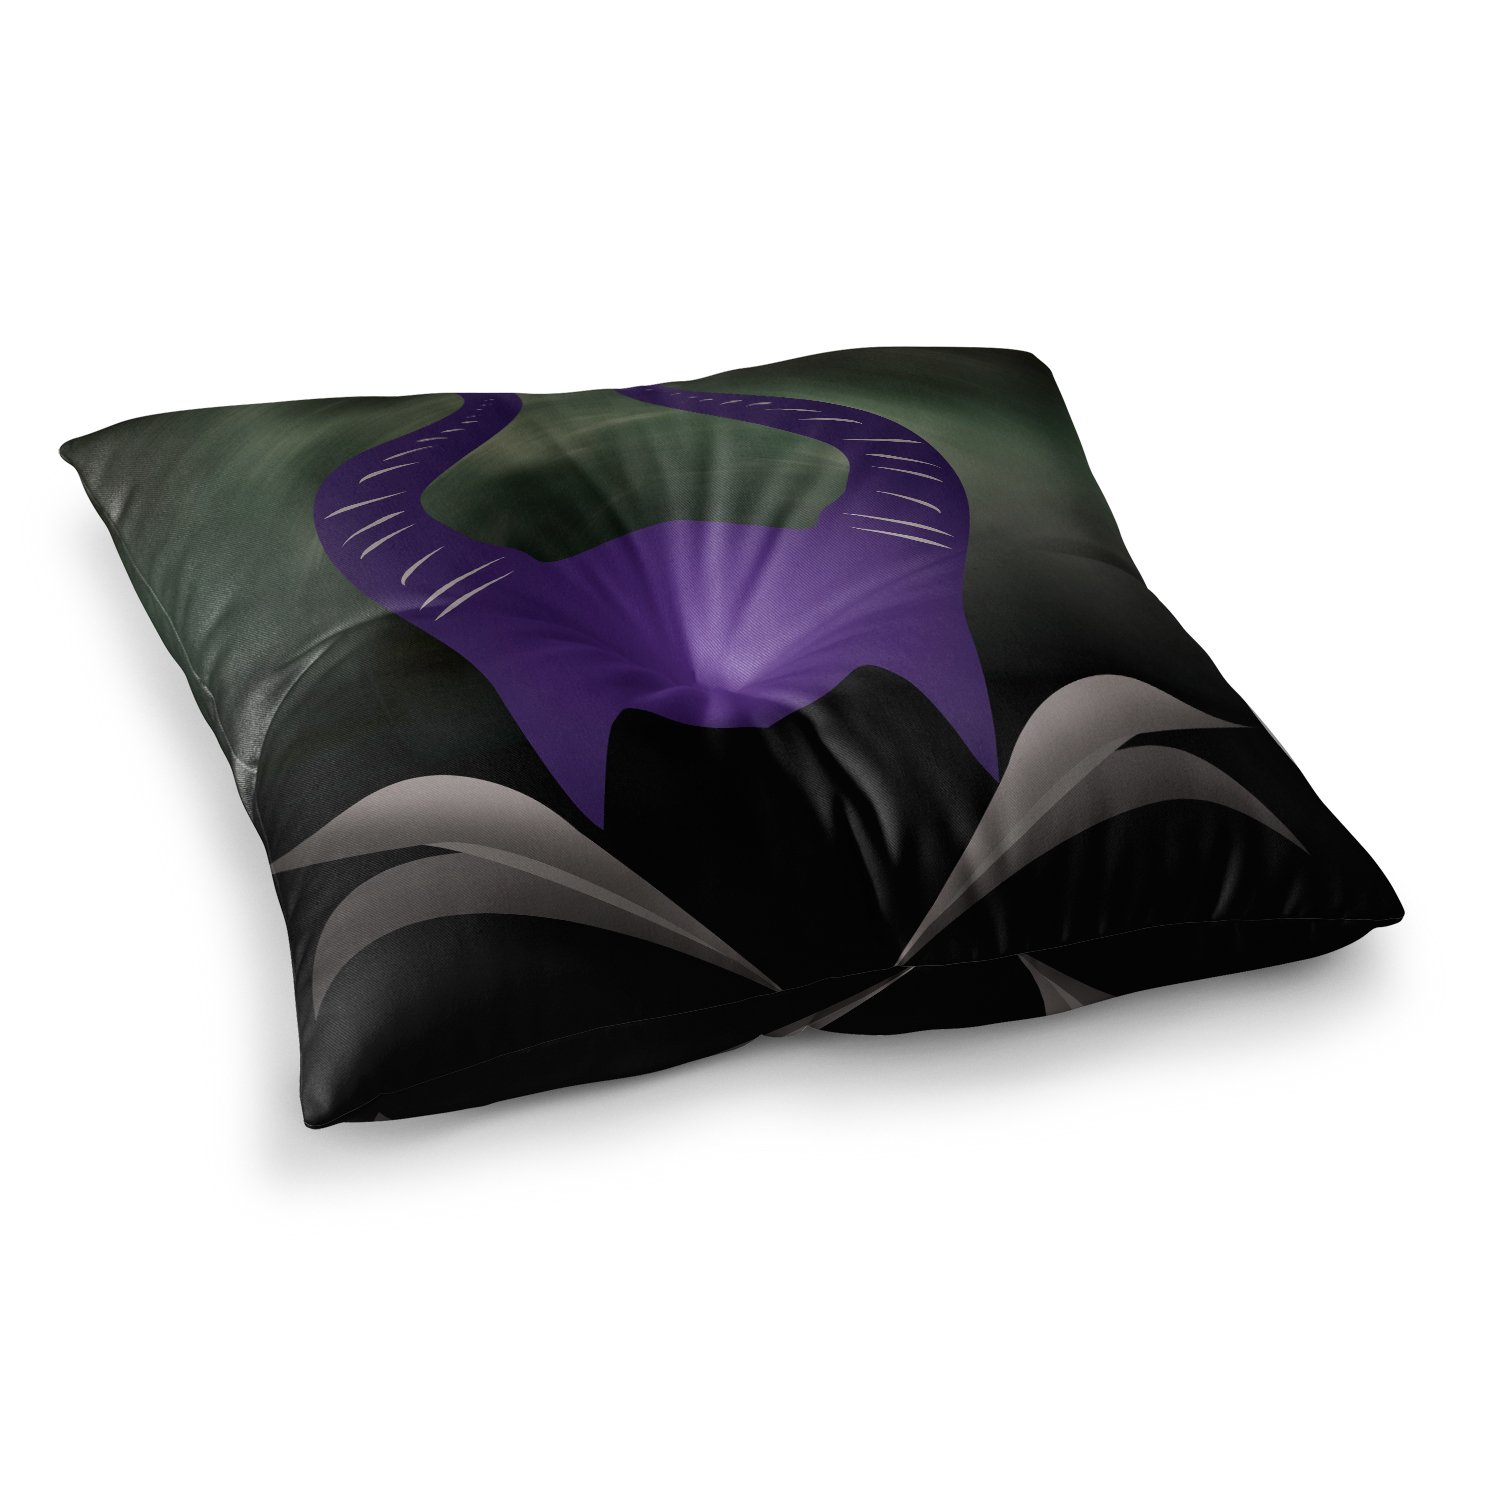 23 x 23 Square Floor Pillow Kess InHouse Kess Original Dark Fairy